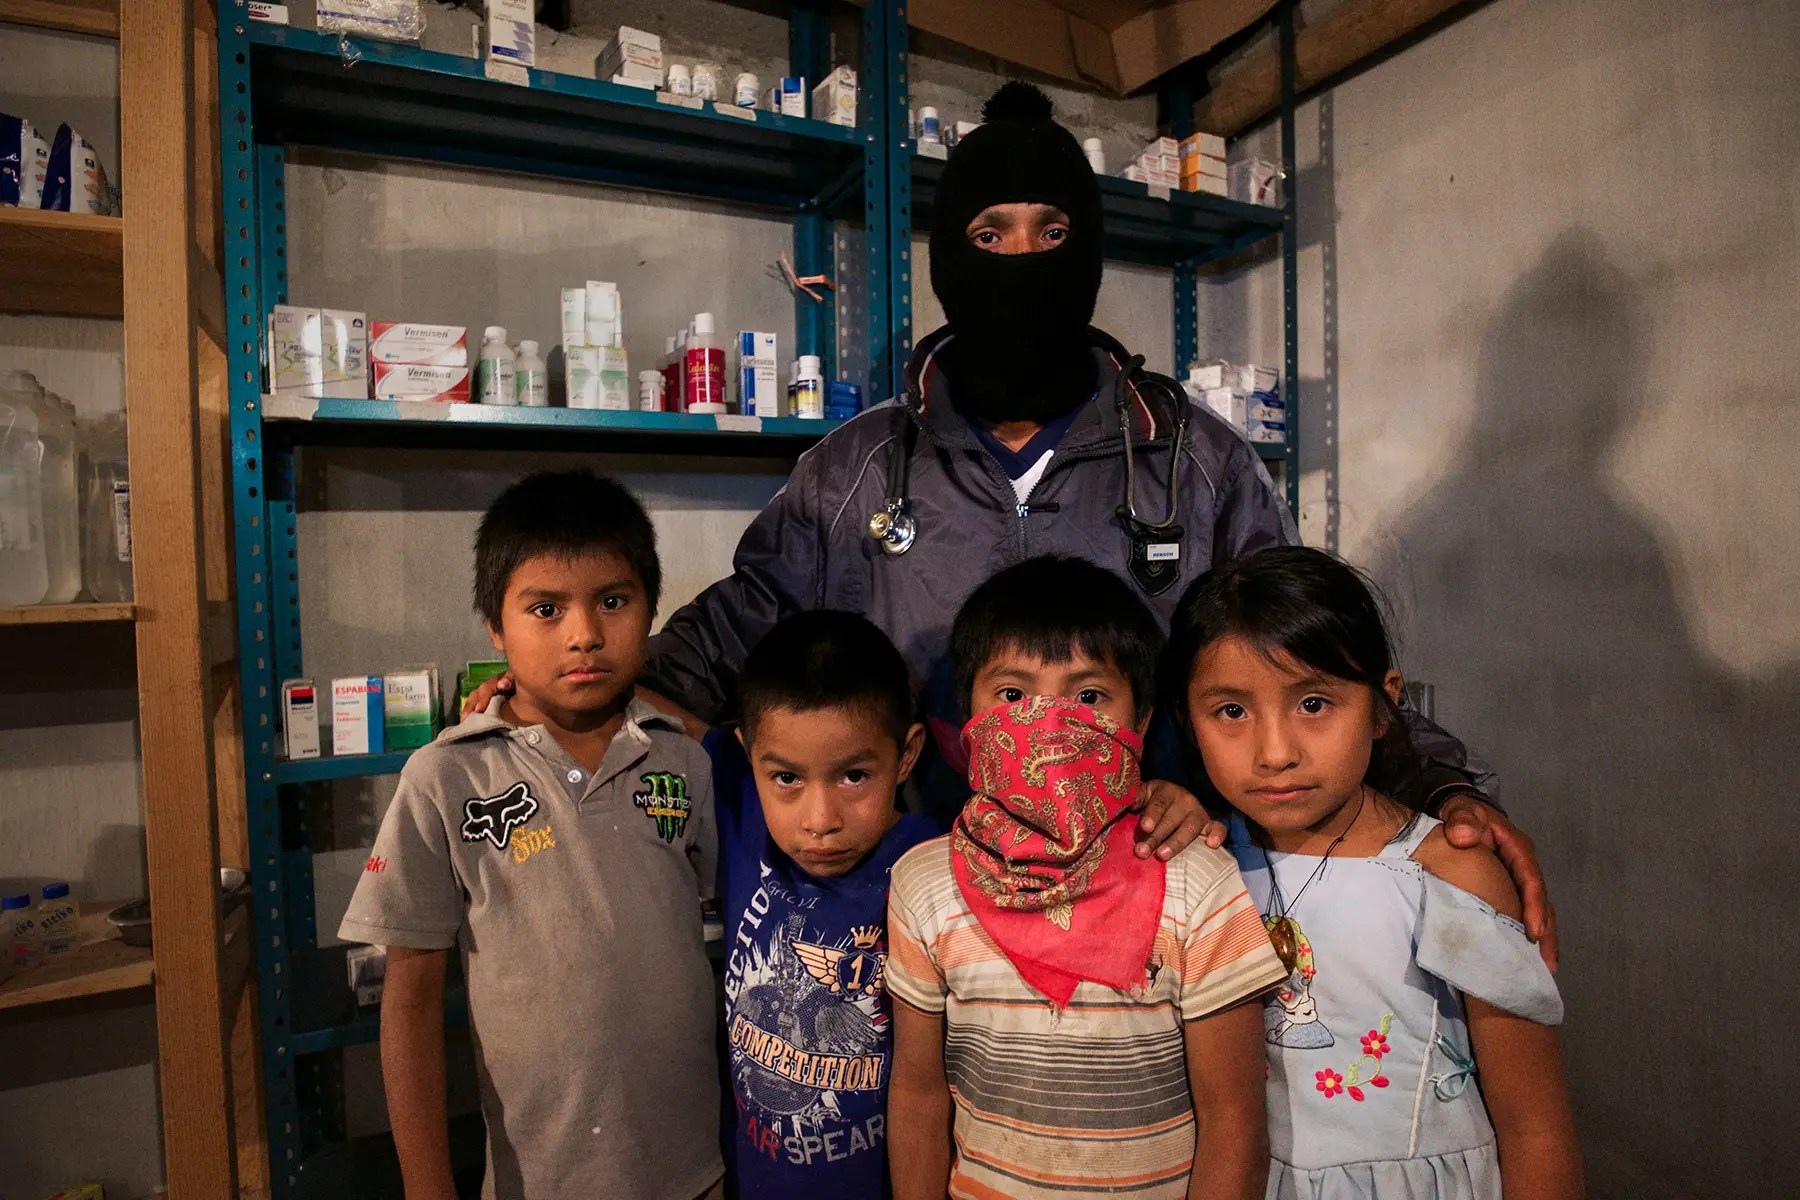 Each community runs its own medical center that is partly funded through the profits from coffee and banana cooperatives, as well with the proceeds from the local Zapatista-run corner store. Recreational drugs are totally shunned, as is alcohol. Commerce in guns, as well as illegal firewood, is forbidden as well.